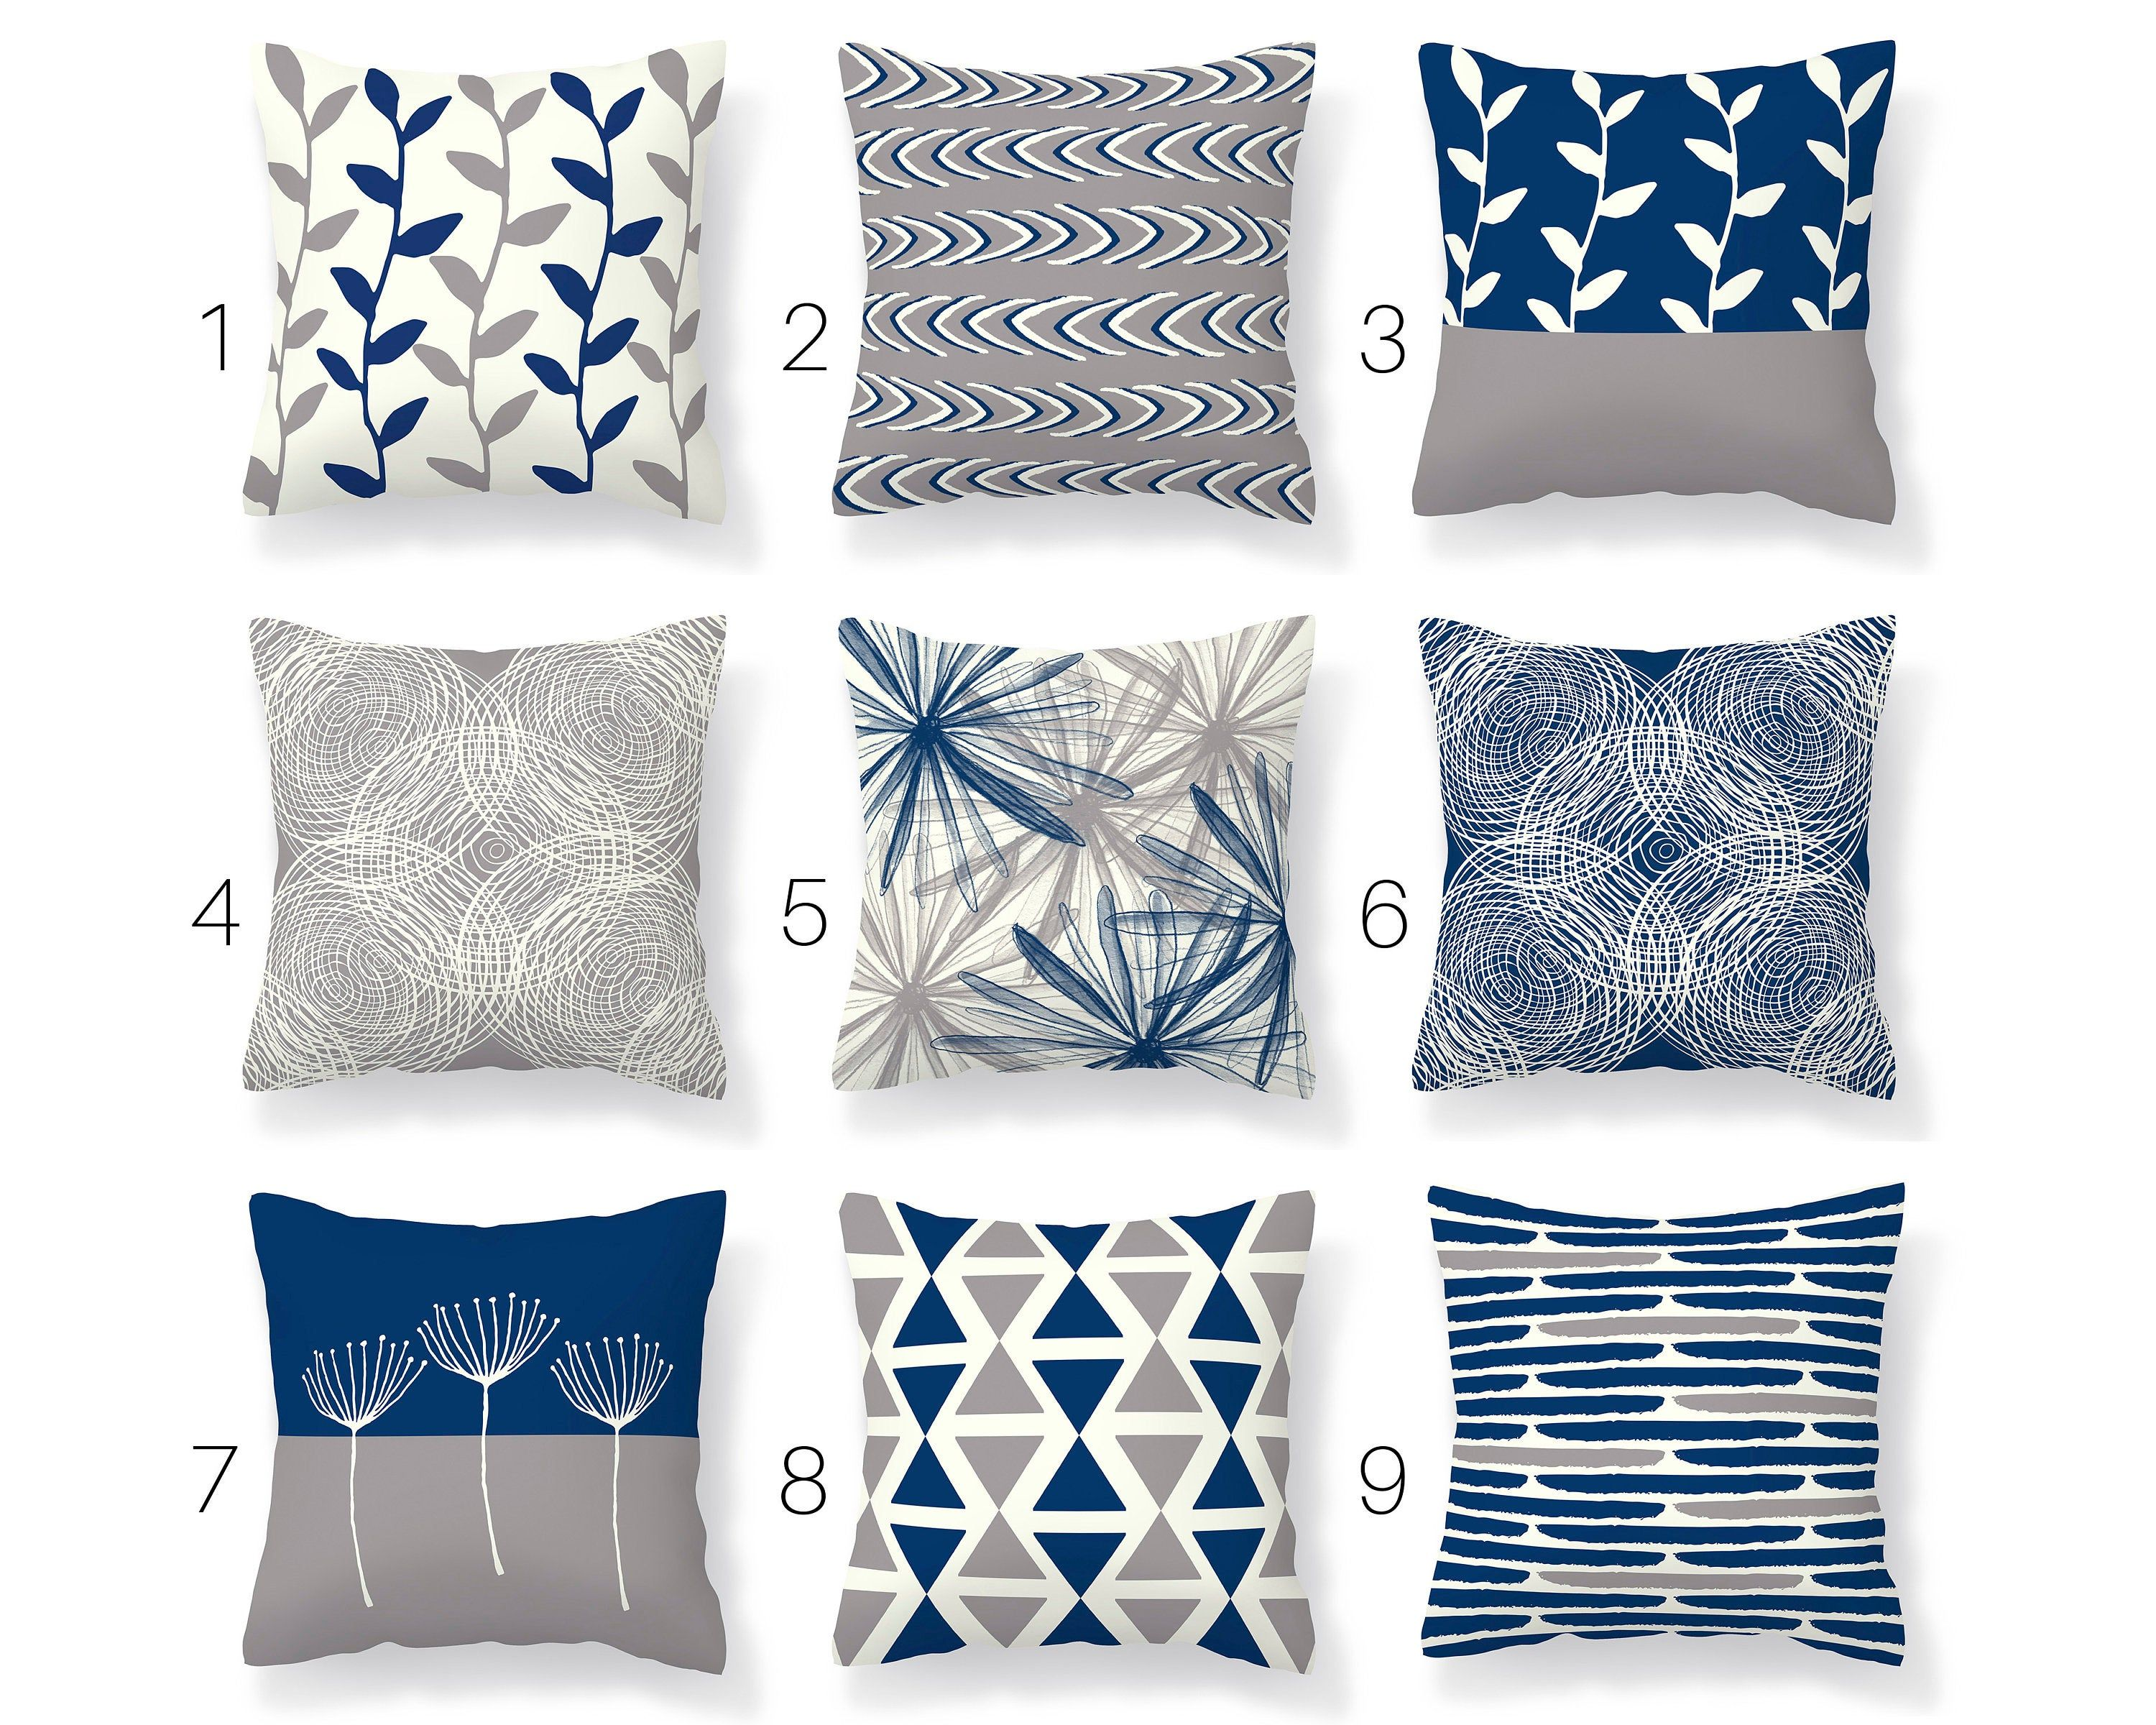 Blue Gray Throw Pillow Cover Modern Mix And Match Pillow Etsy Grey Throw Pillows Grey And White Cushions Blue Throw Pillows Blue throw pillows for couch